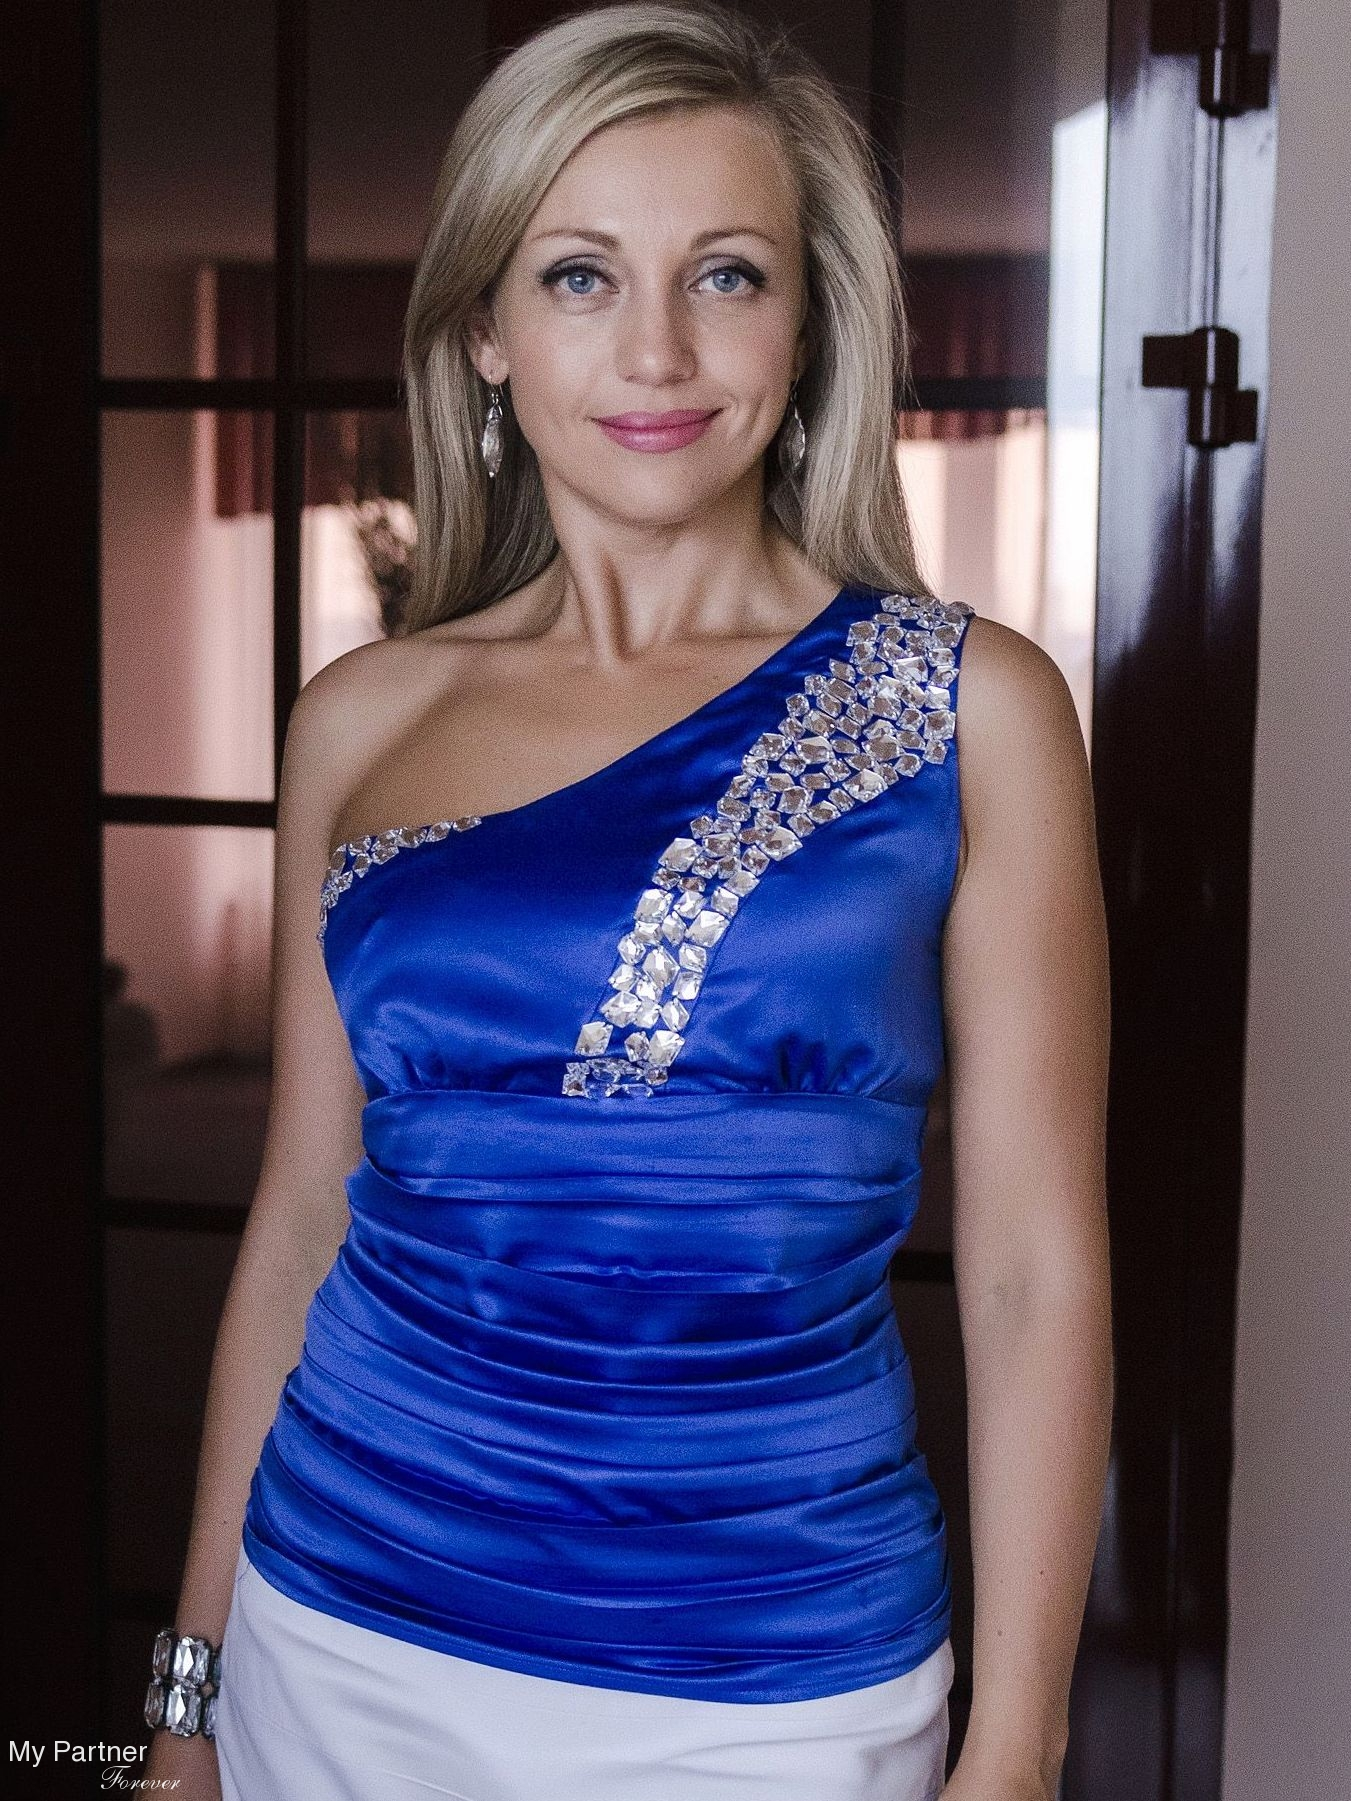 """dating moscow russia Russia's single ladies fed up with country's useless bachelors anna nemtsova reports on the glamorous moscow girls who are giving up on their """"useless"""" countrymen."""